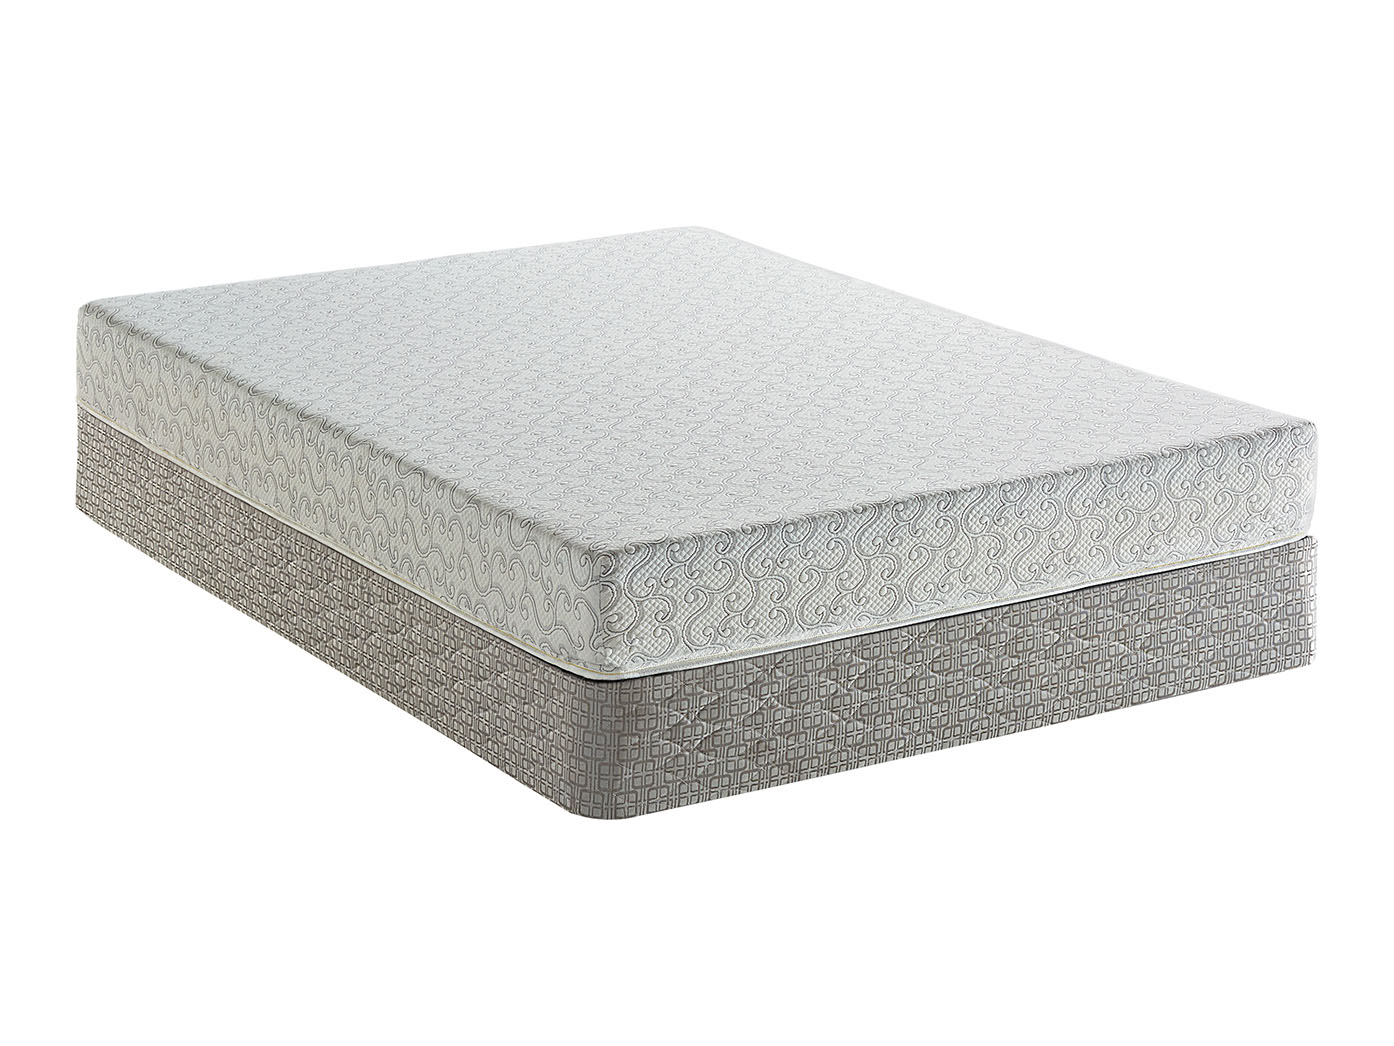 Armstrong Sertapedic Gel Memory Foam Full Mattress